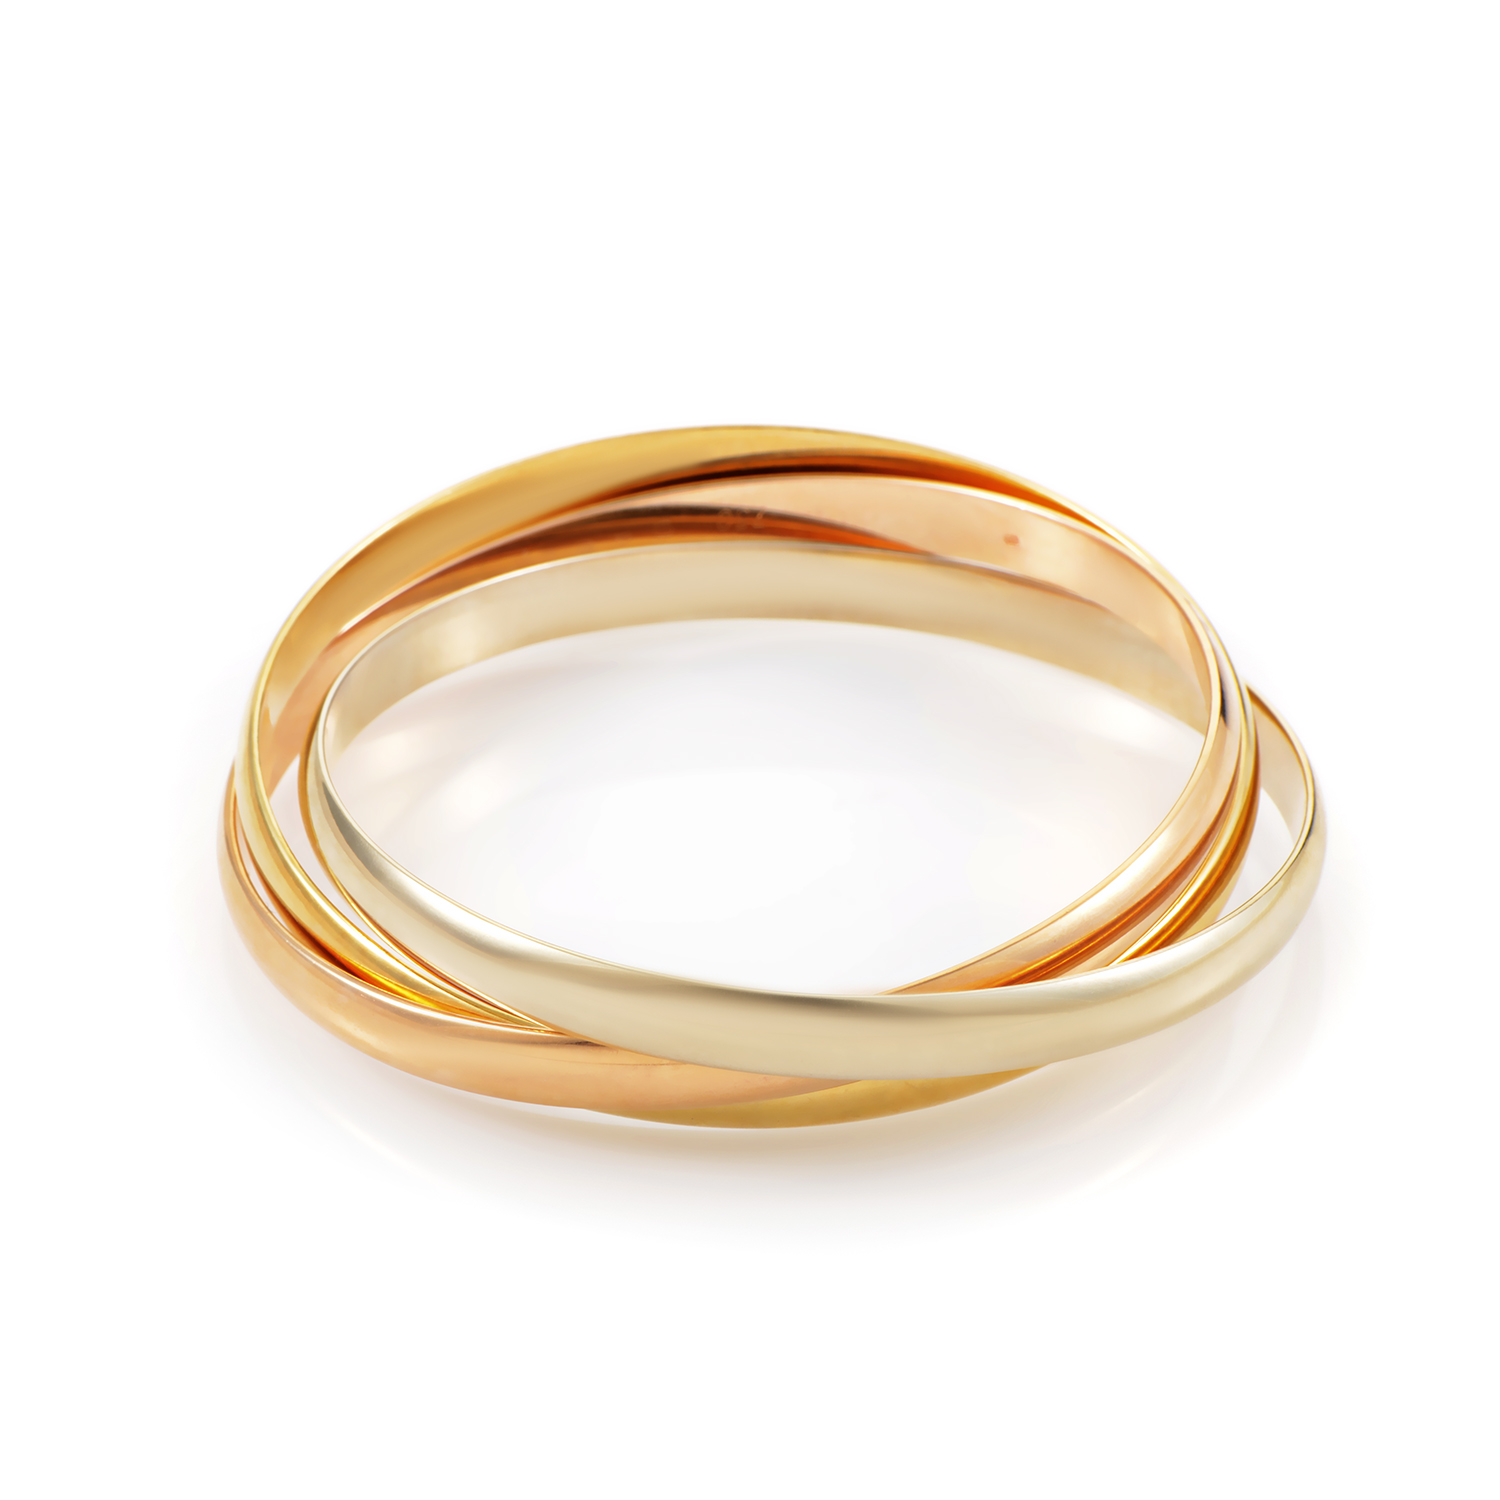 Cartier Trinity Women's 18K Tri-Gold Rolling Bangle Bracelet